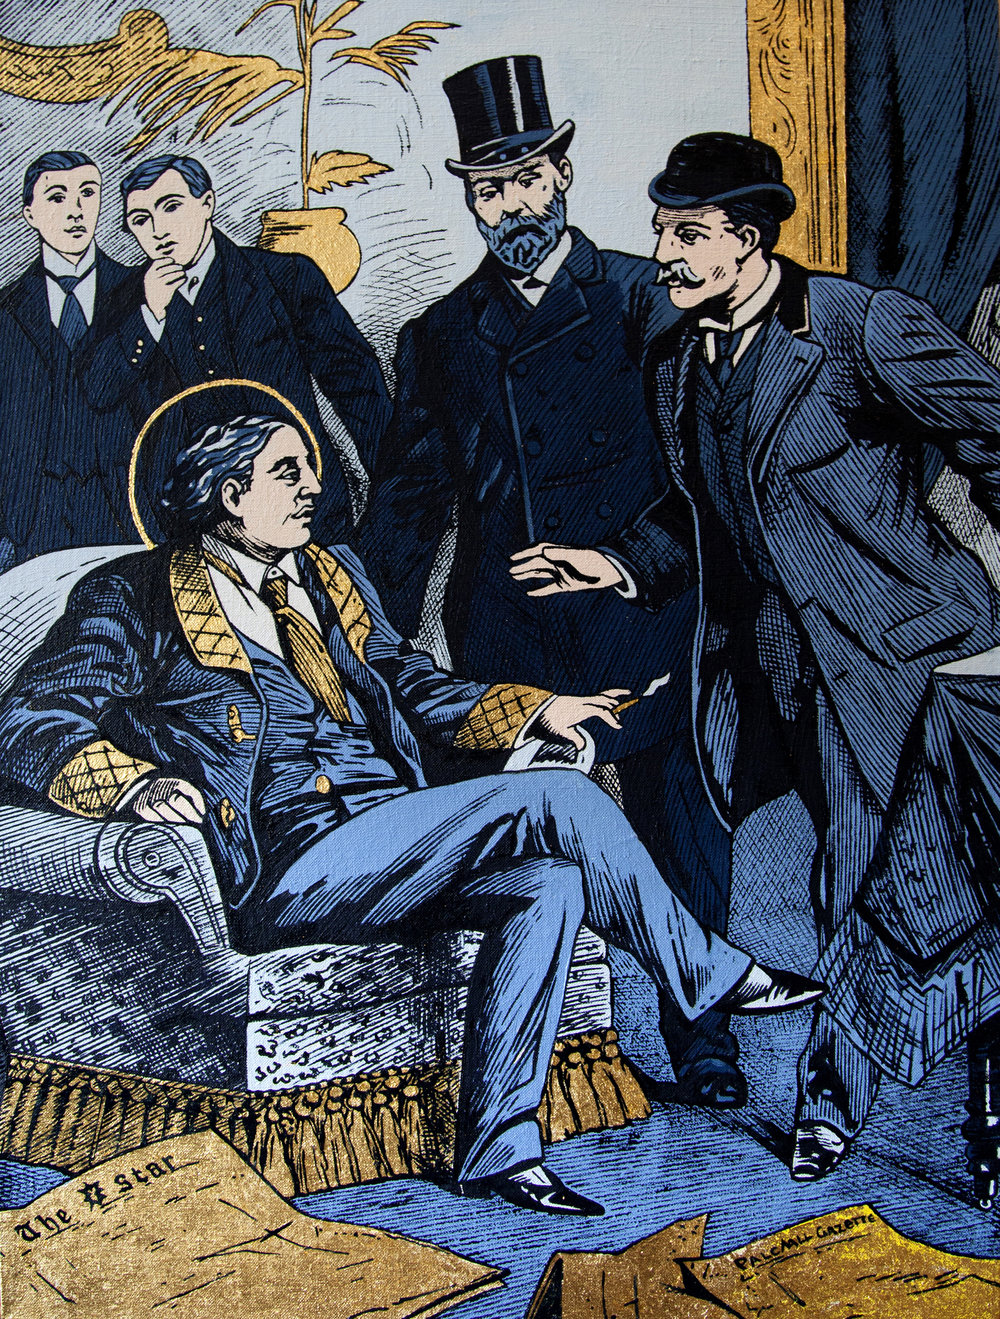 McDermott & McGough, Arrest of Oscar Wilde at the Cadogan Hotel, Oil and Gold Leaf on Linen, 2017 (Courtesy of the Artists)